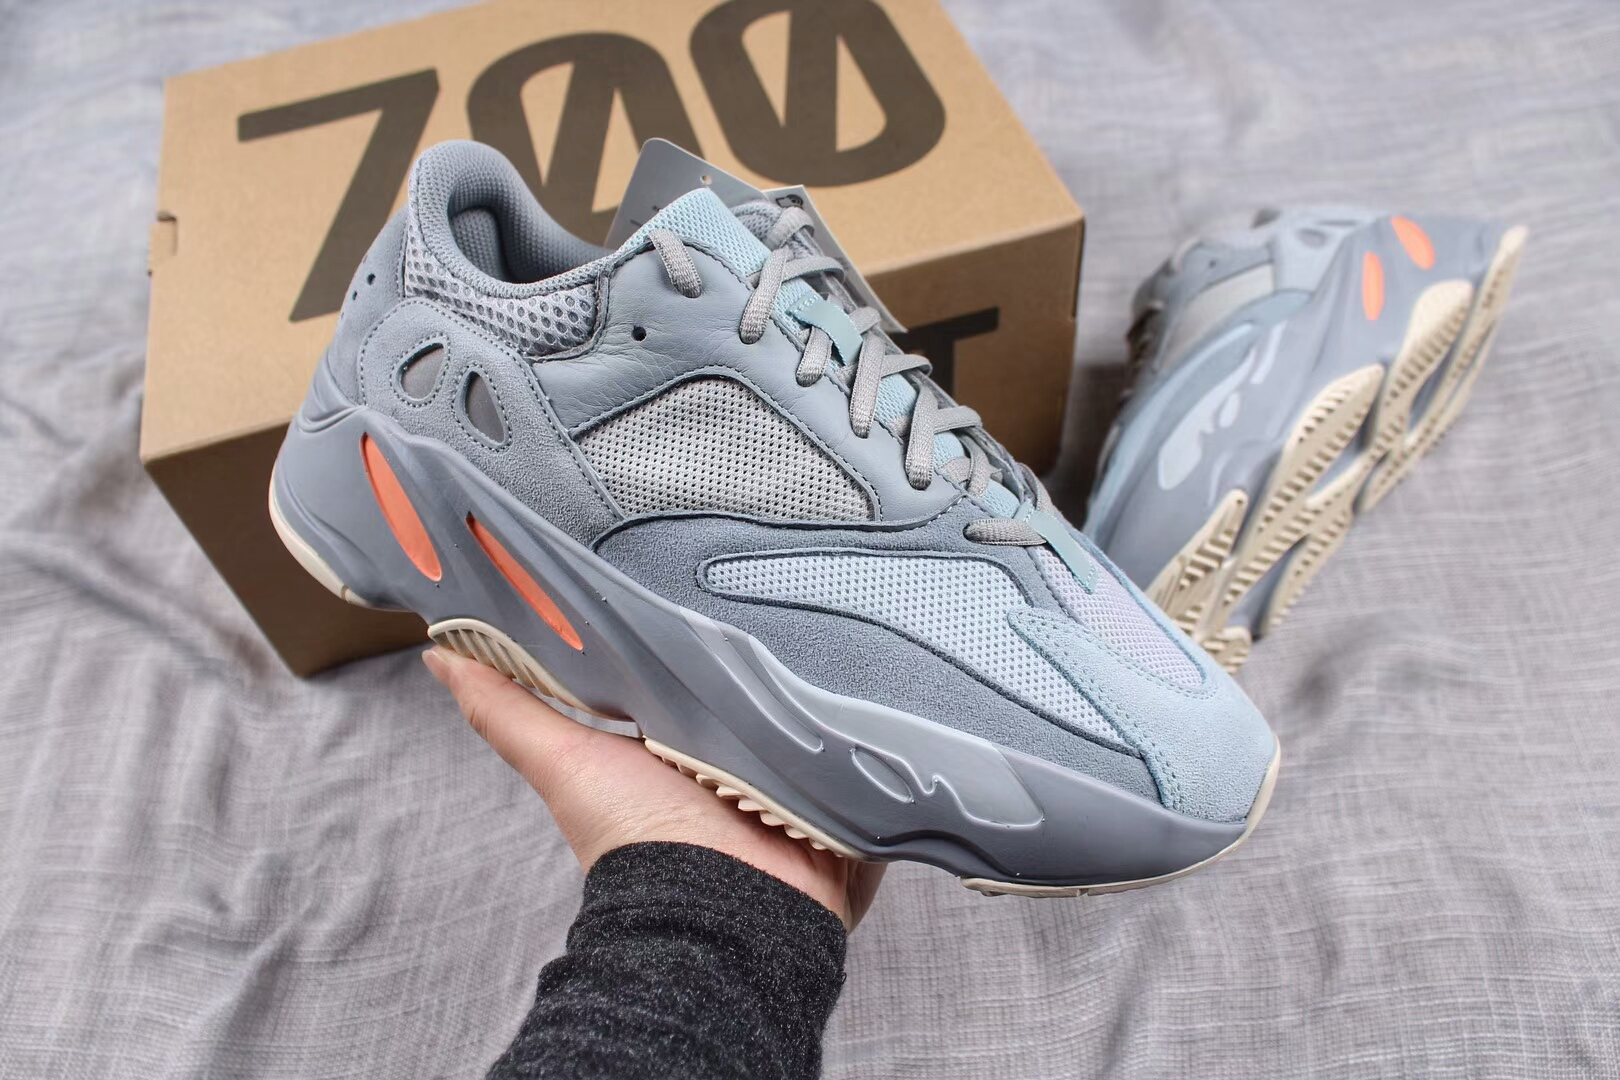 5bf1e39f4c165 Adidas Yeezy Boost 700 Inertia Sneakers